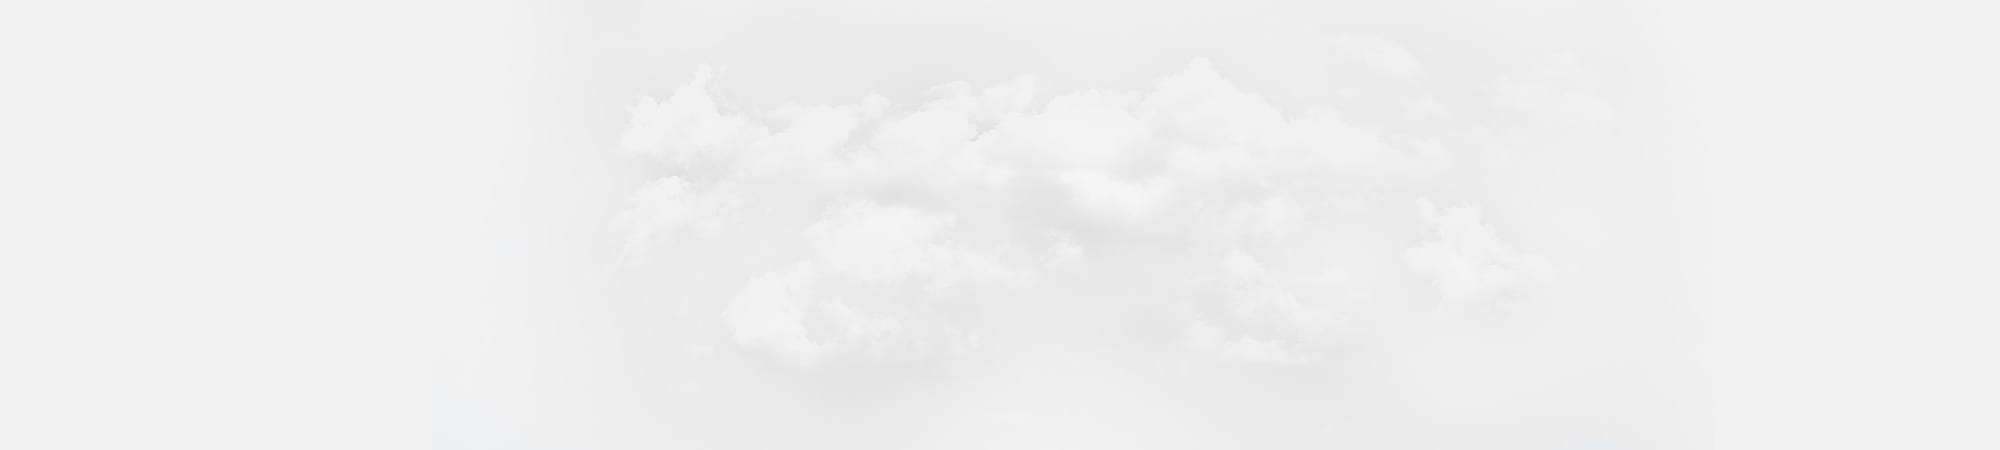 cloud design background for industrial marketing website